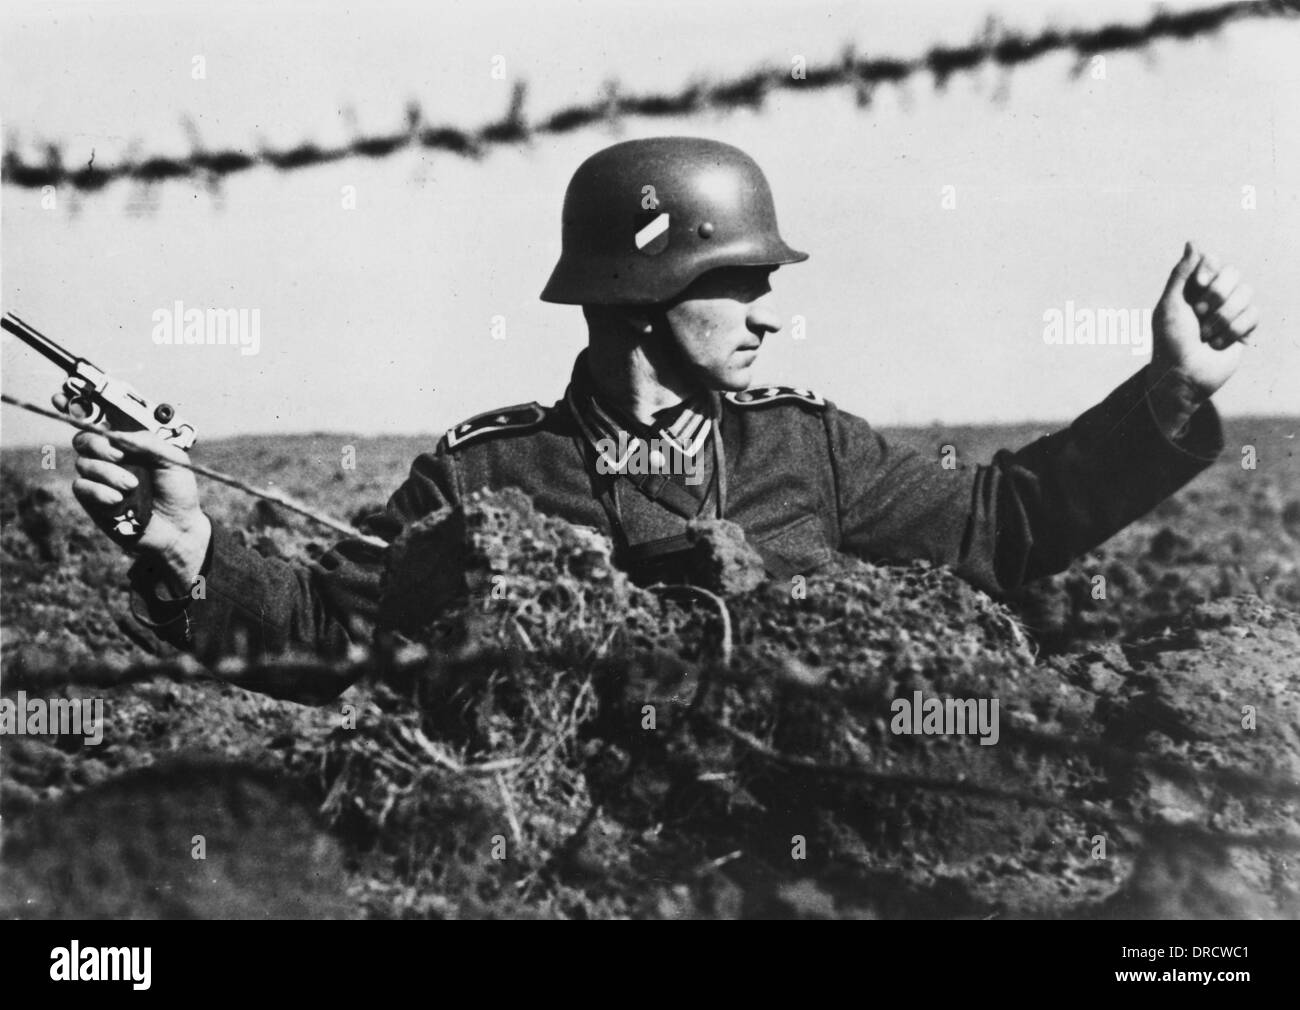 German soldier WWII - Stock Image